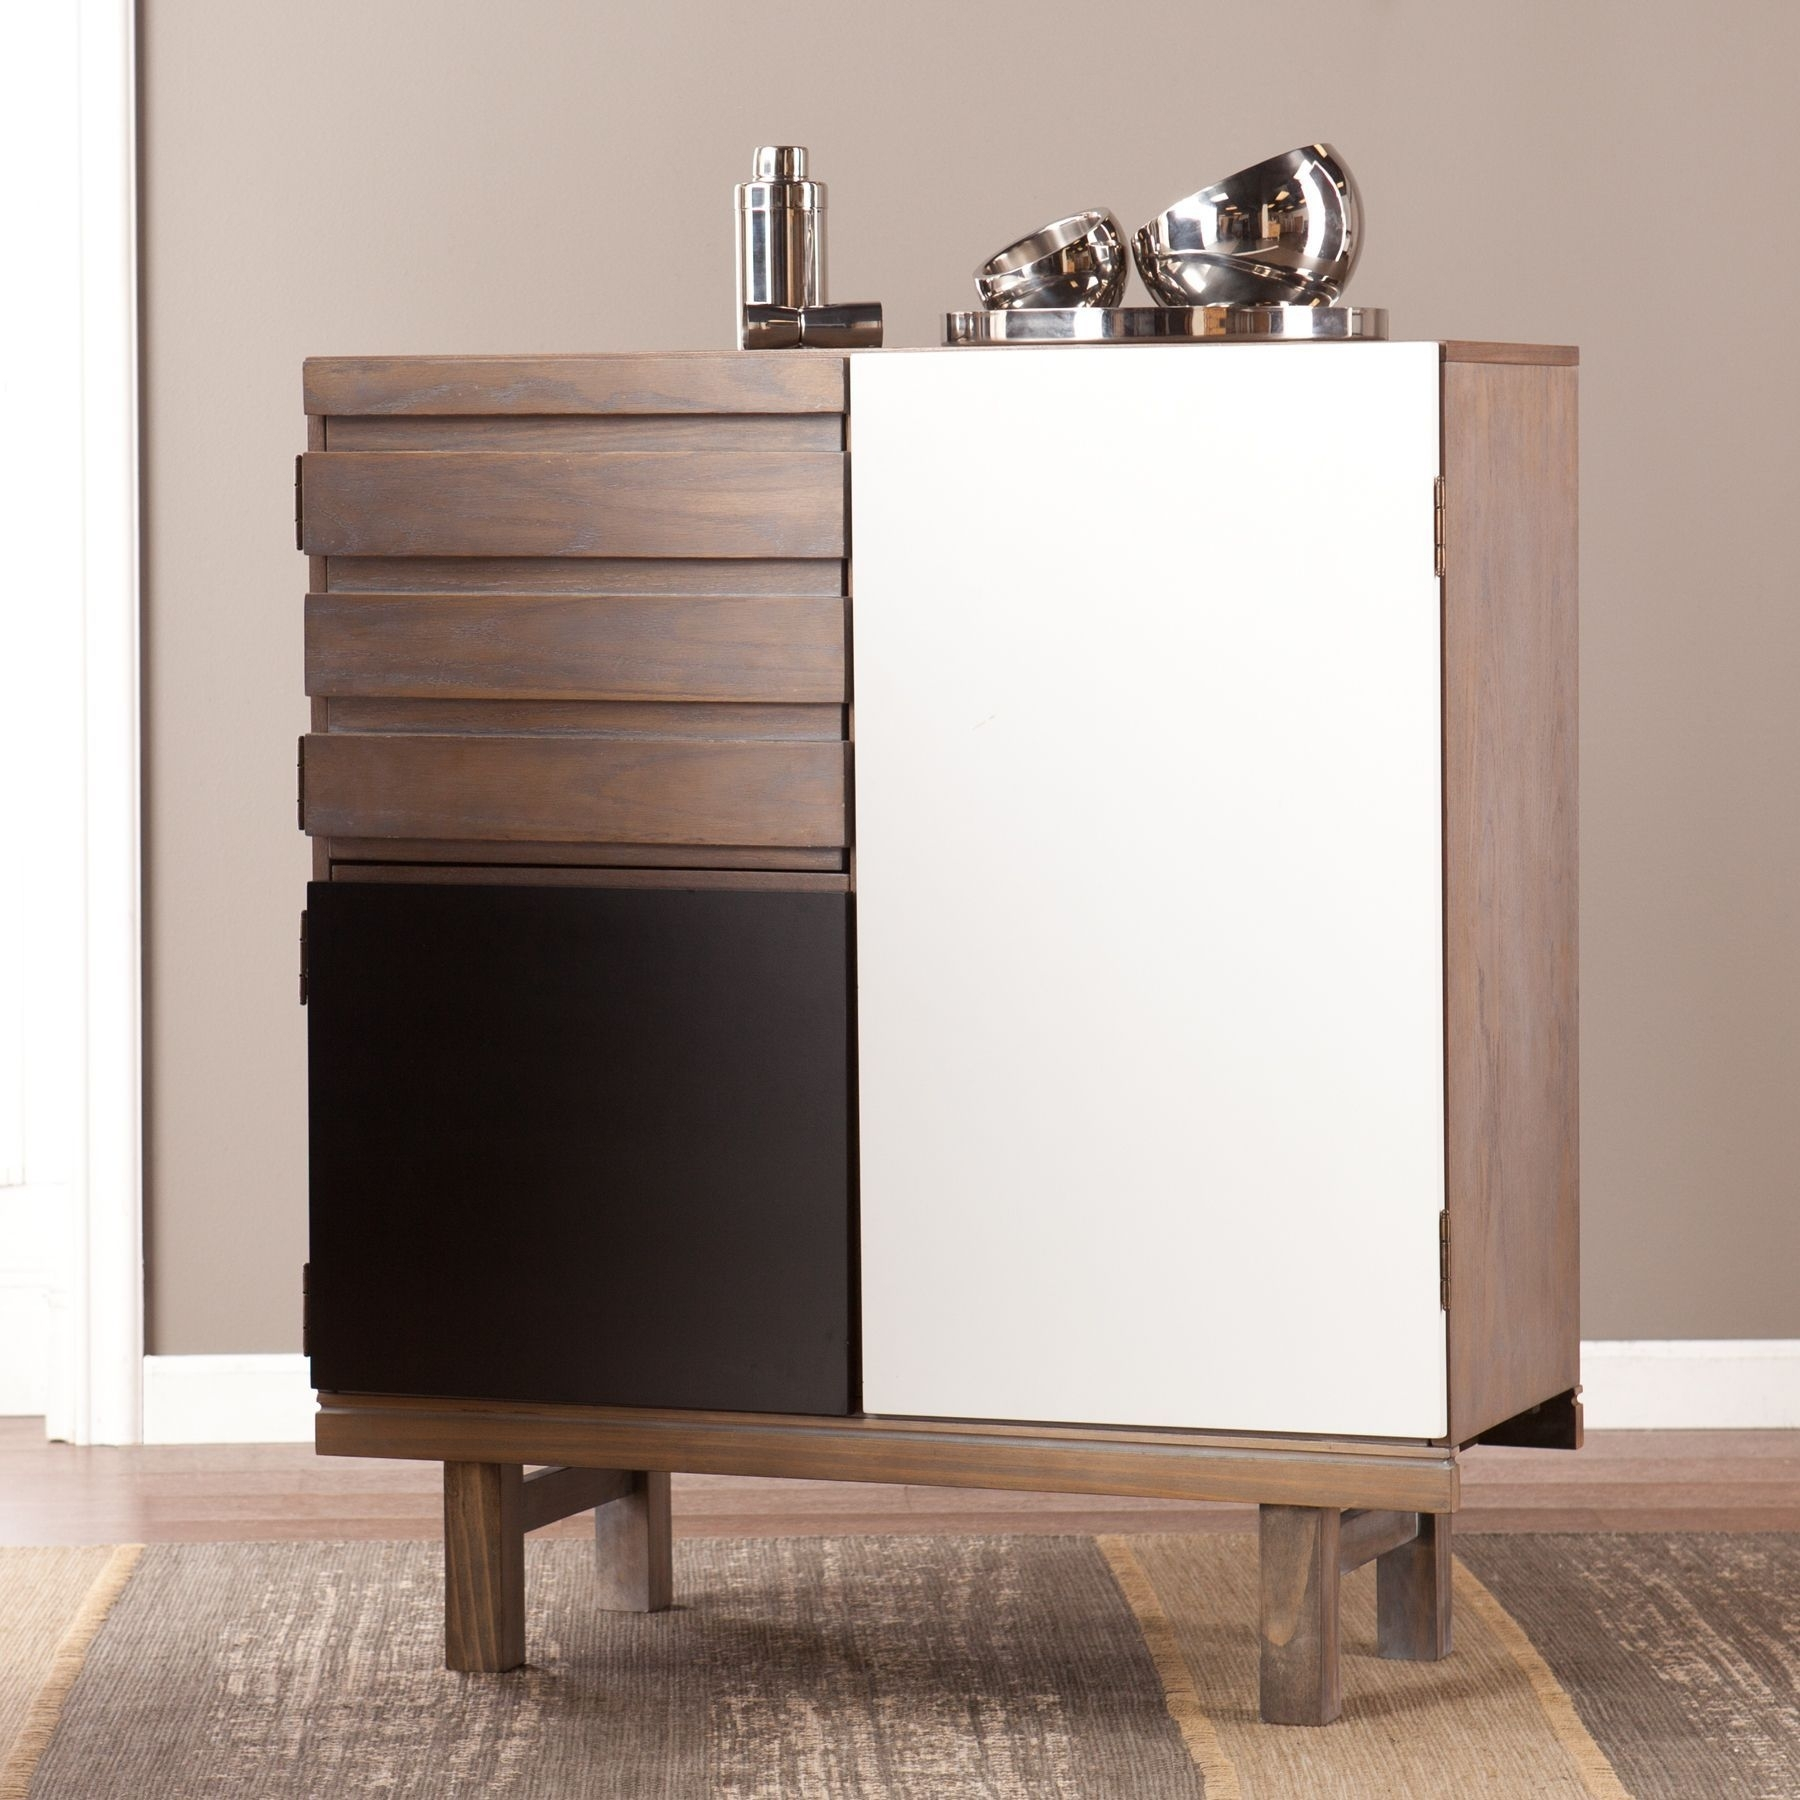 It's Hip To Be Square! With The Chaz Cabinet, Trendy Color Blocked throughout Burnt Oak Wood Sideboards (Image 17 of 30)